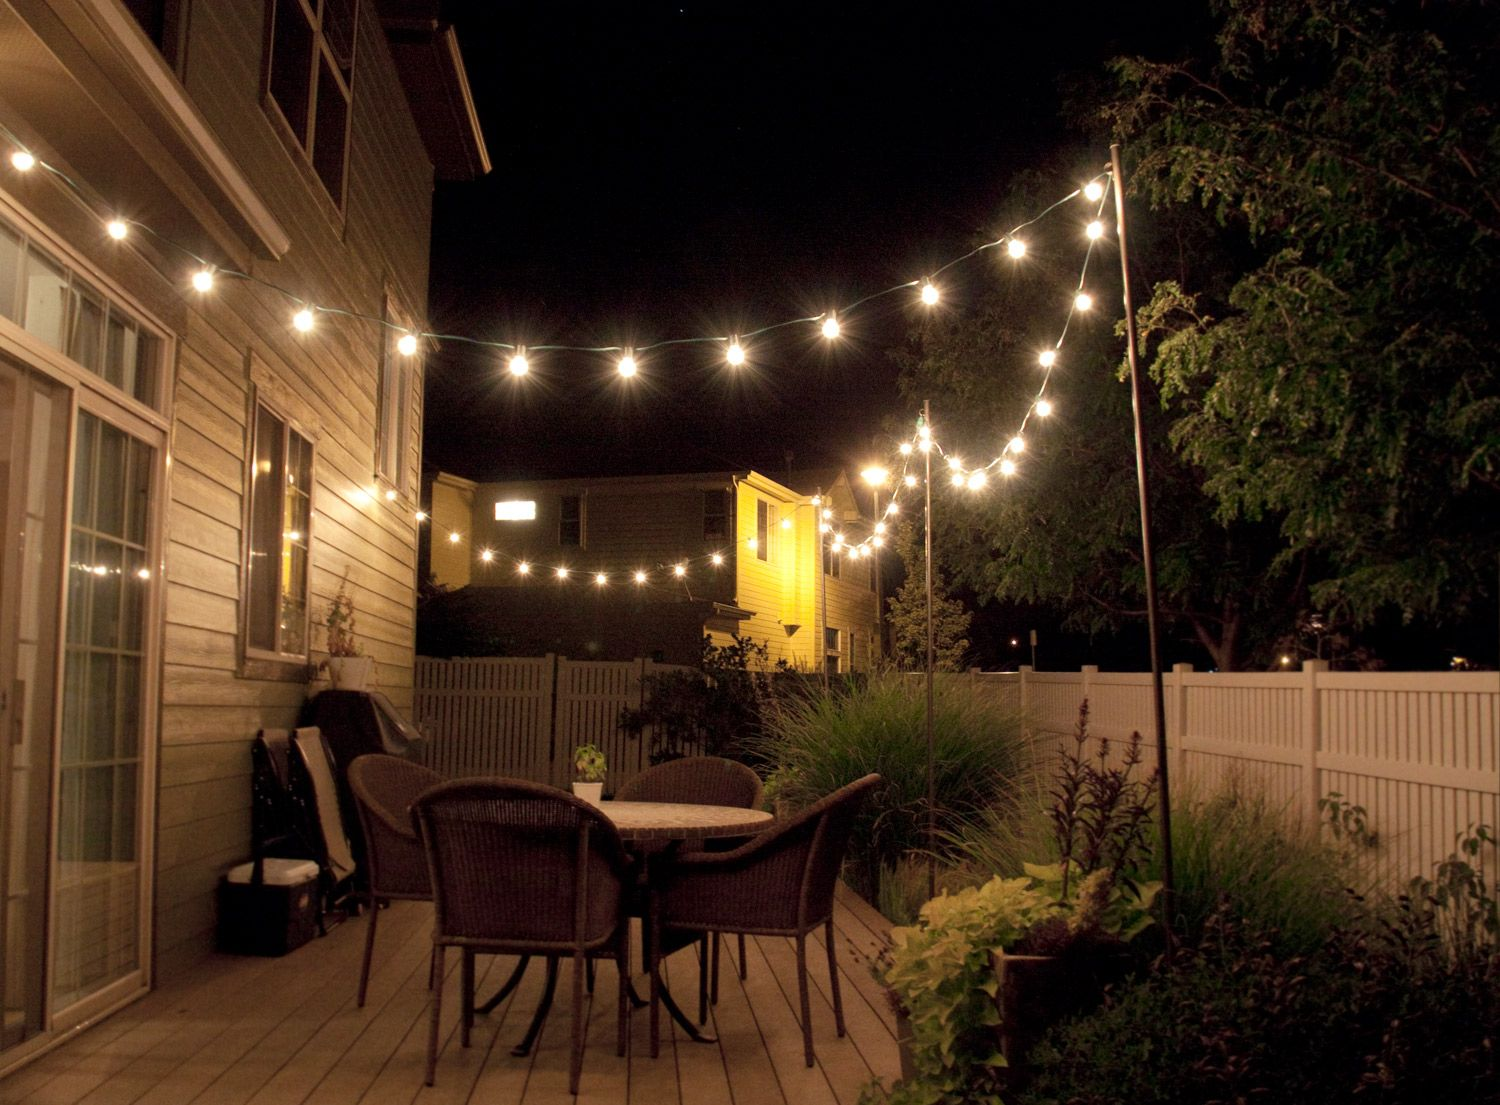 How to make inexpensive poles to hang string lights on - café style! Via  Bright July